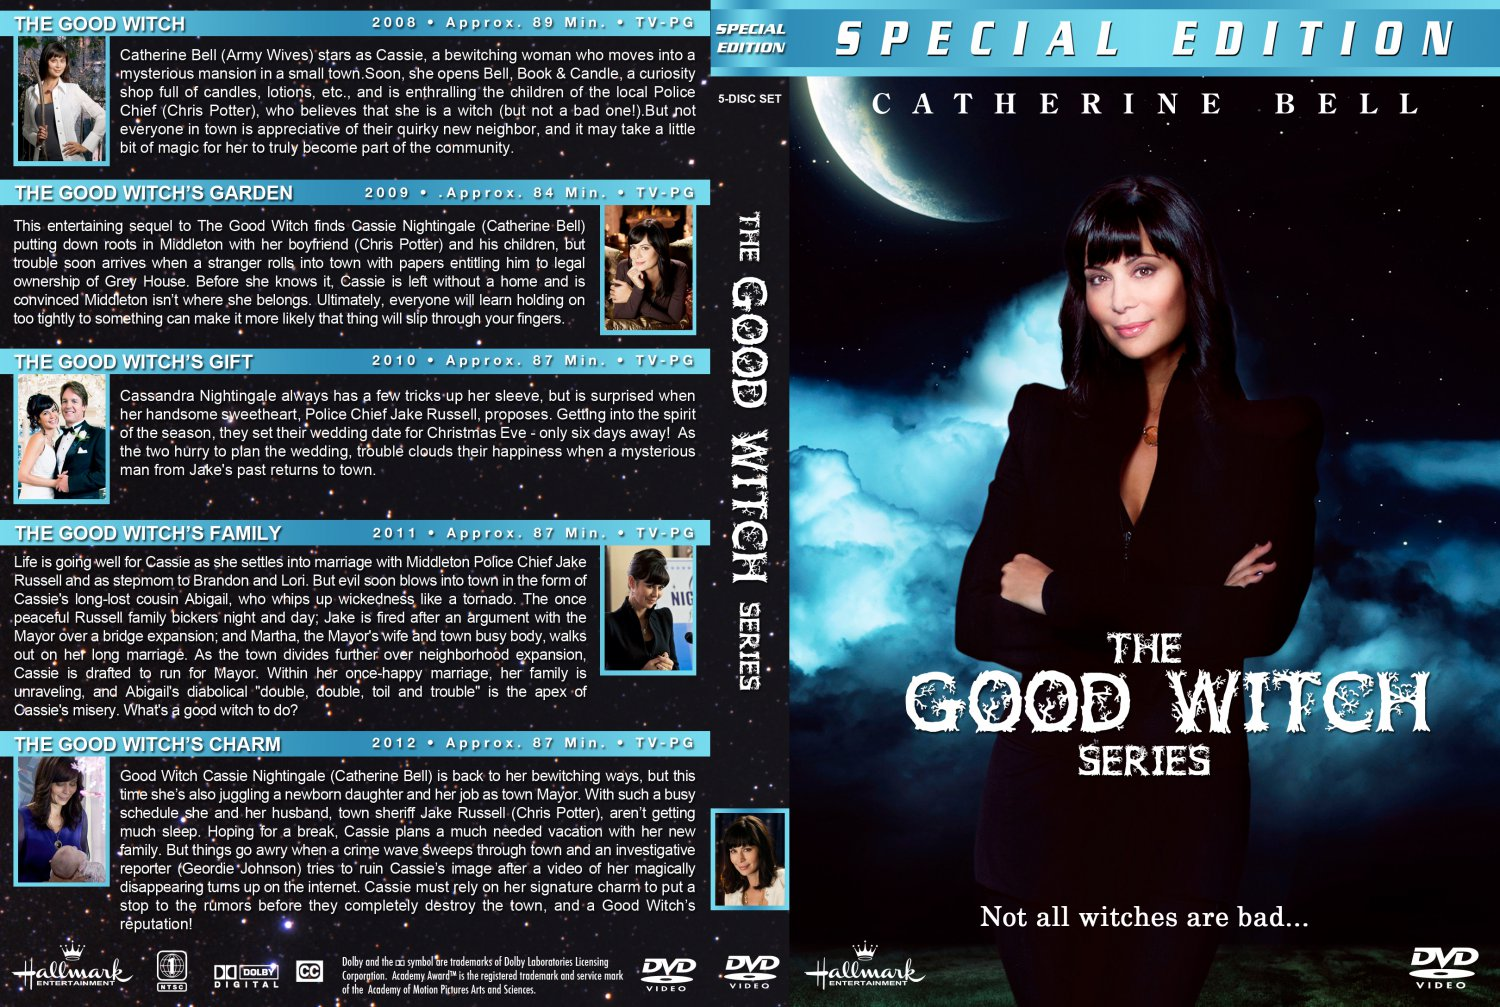 The Good Witch Series